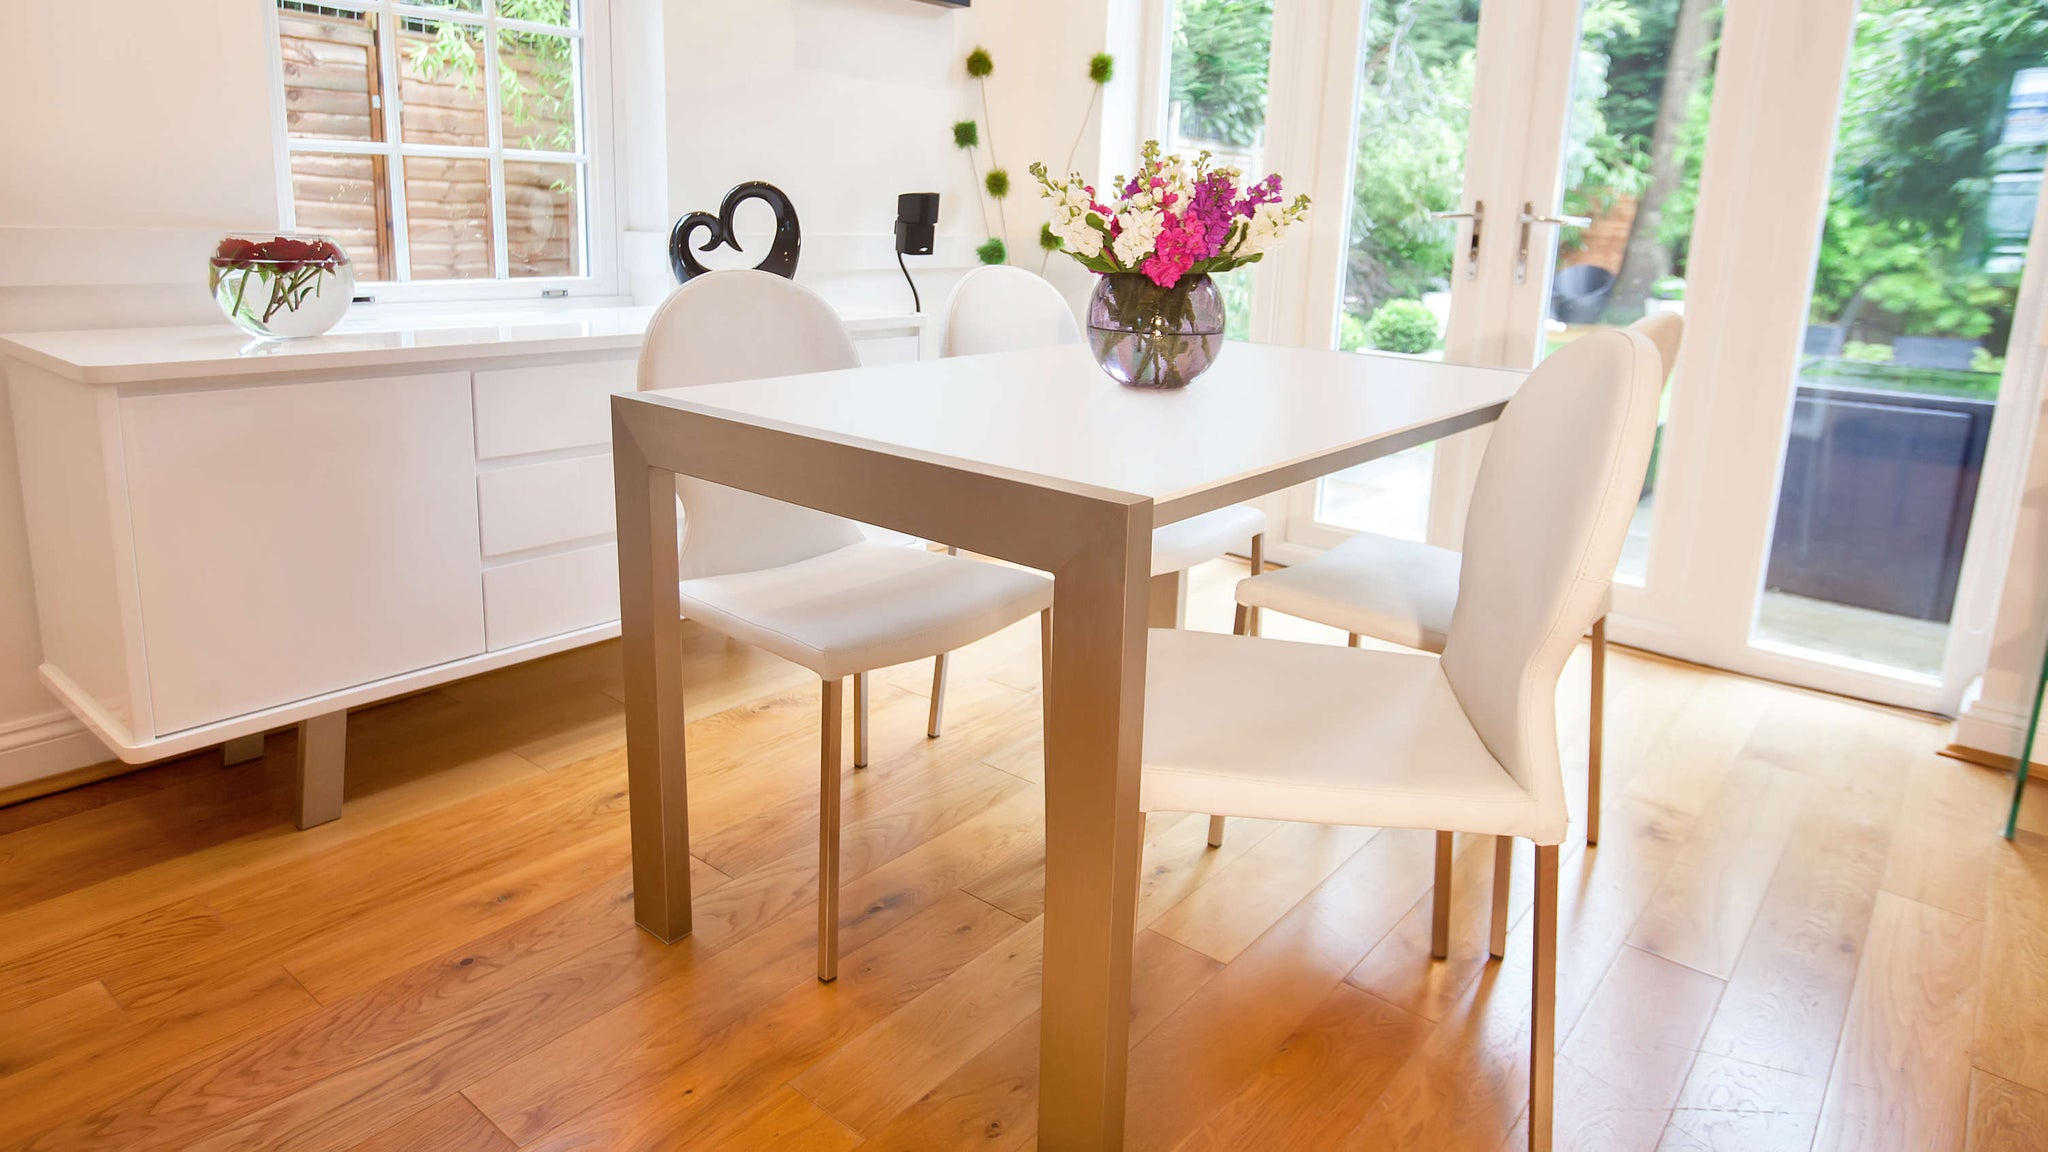 Comfortable White Dining Chairs and Large Dining Table